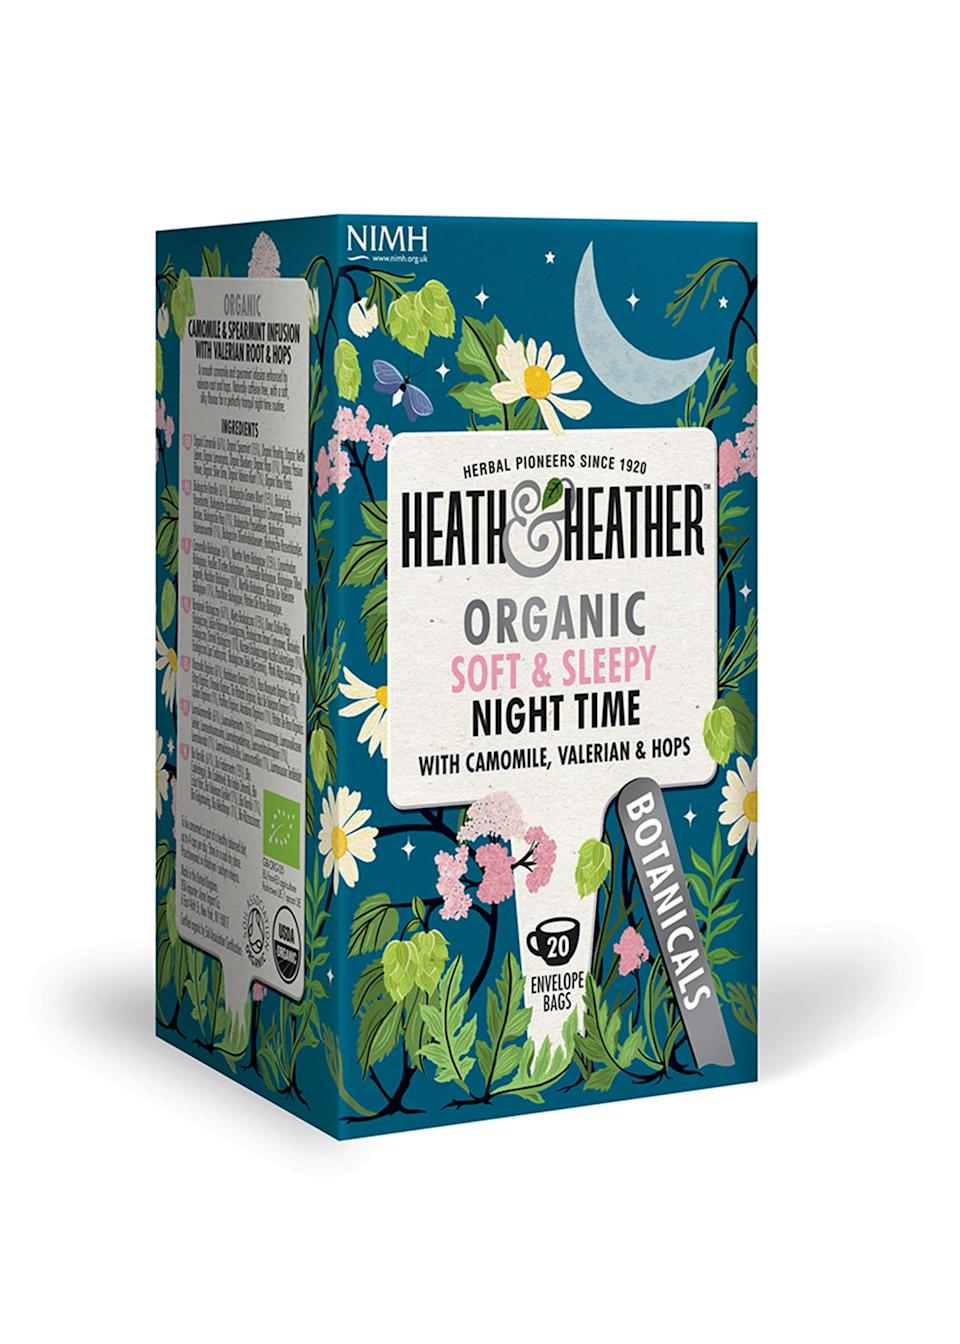 """<p>Ensuring you get a good night's sleep starts well before hitting the pillow, as a (caffeine-free) soothing tea can help ease you into relaxation mode. So kick off your shoes and get stuck into a new book with a hearty cup of smooth camomile and spearmint by Heath & Heather. <a href=""""https://shop.heathandheather.co.uk/products/heath-and-heather-organic-night-time-20-bag"""" rel=""""nofollow noopener"""" target=""""_blank"""" data-ylk=""""slk:Buy here"""" class=""""link rapid-noclick-resp""""><em>Buy here</em></a>. </p>"""